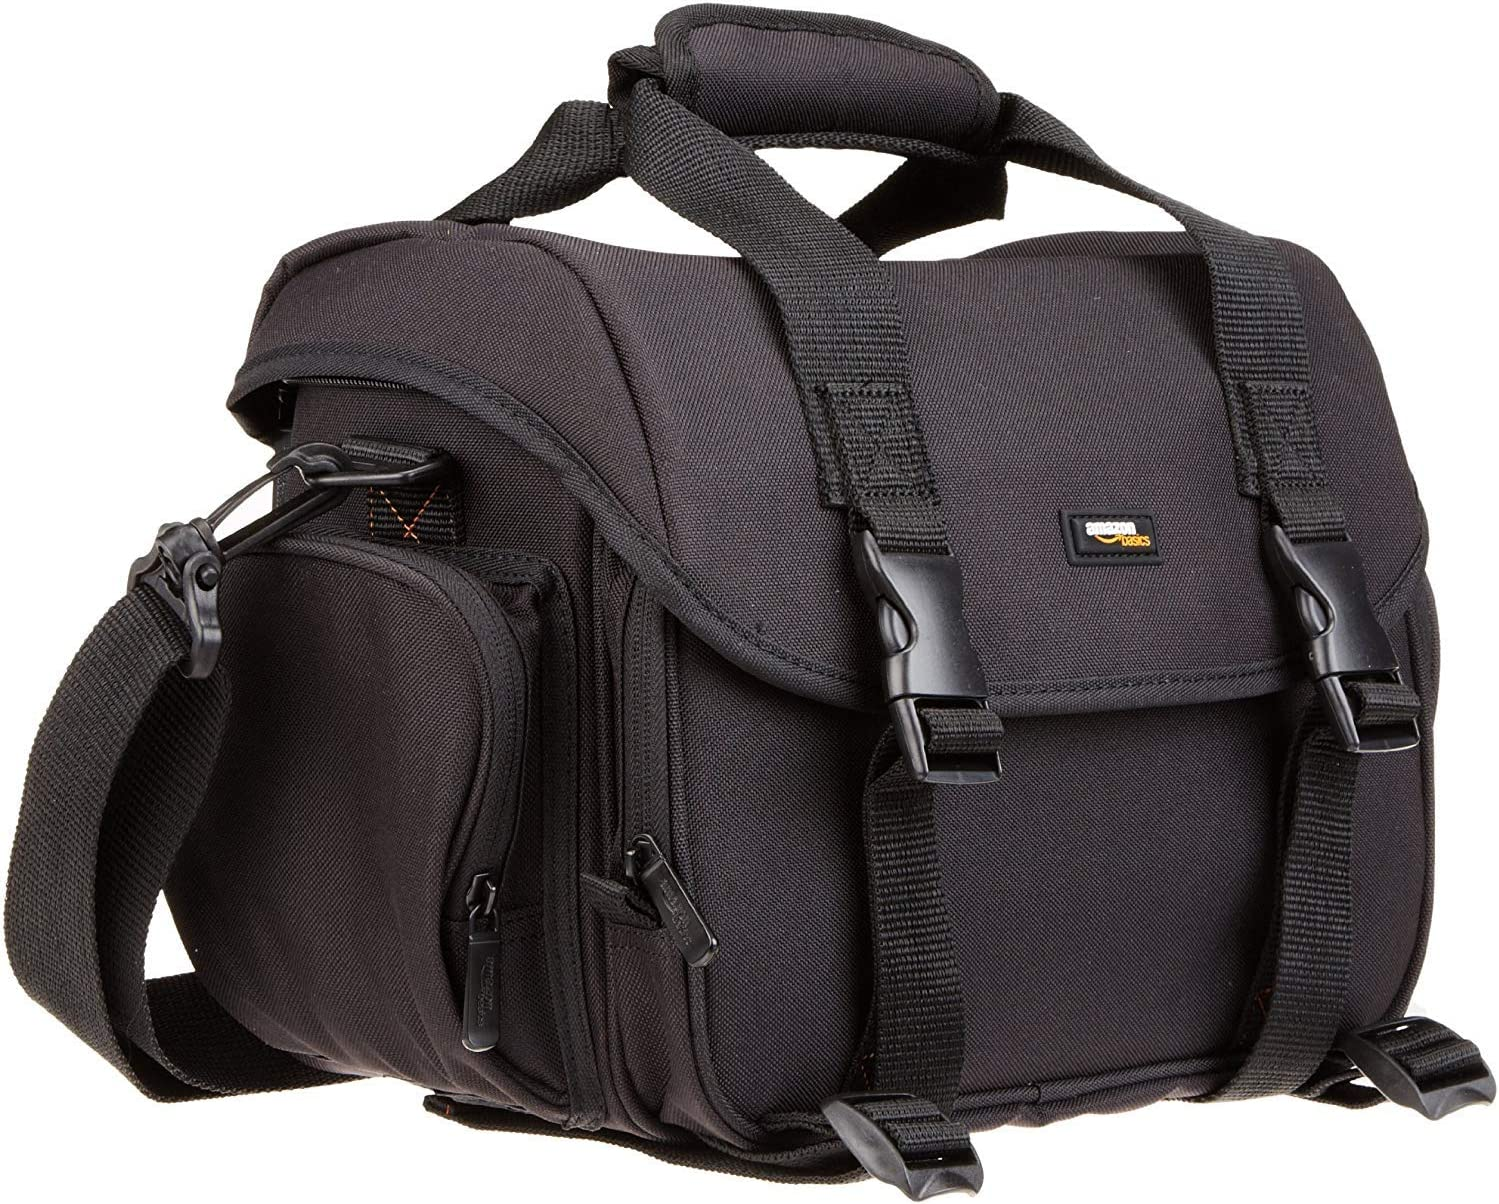 DSLR Camera Gadget Bag